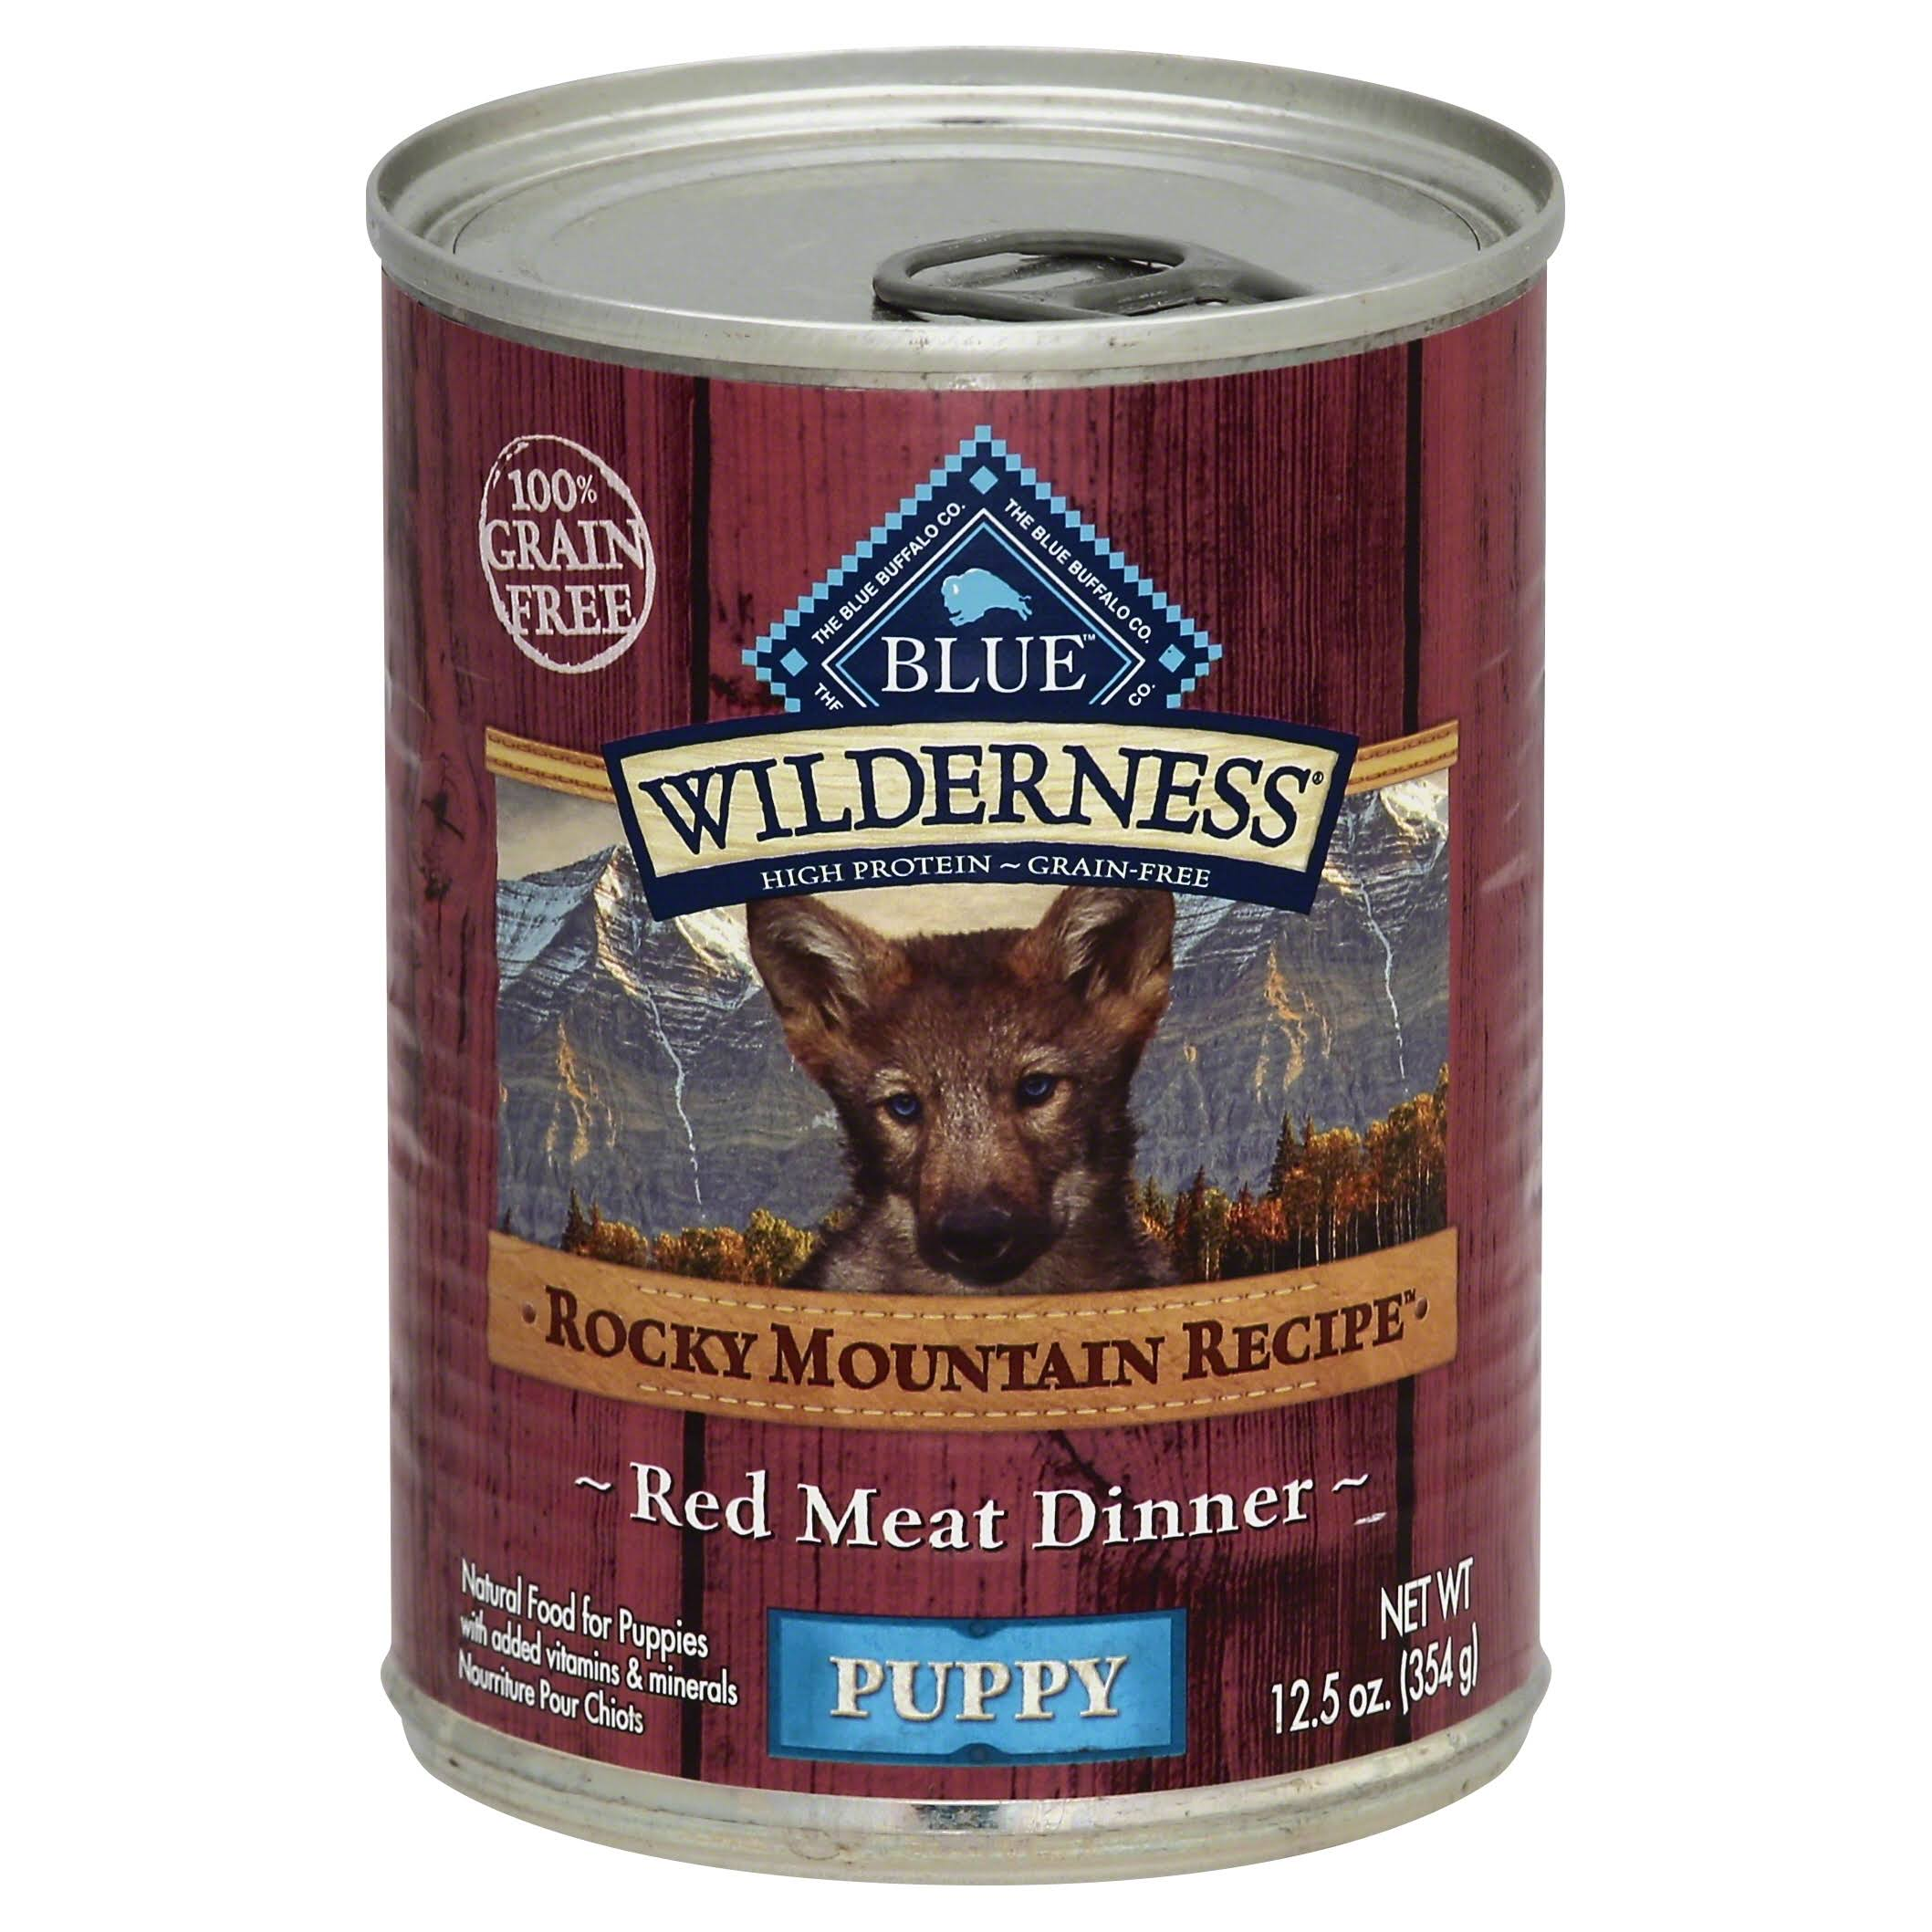 Blue Buffalo Wilderness High Protein Wet Puppy Food - Rocky Mountain Recipe, 12.5 oz